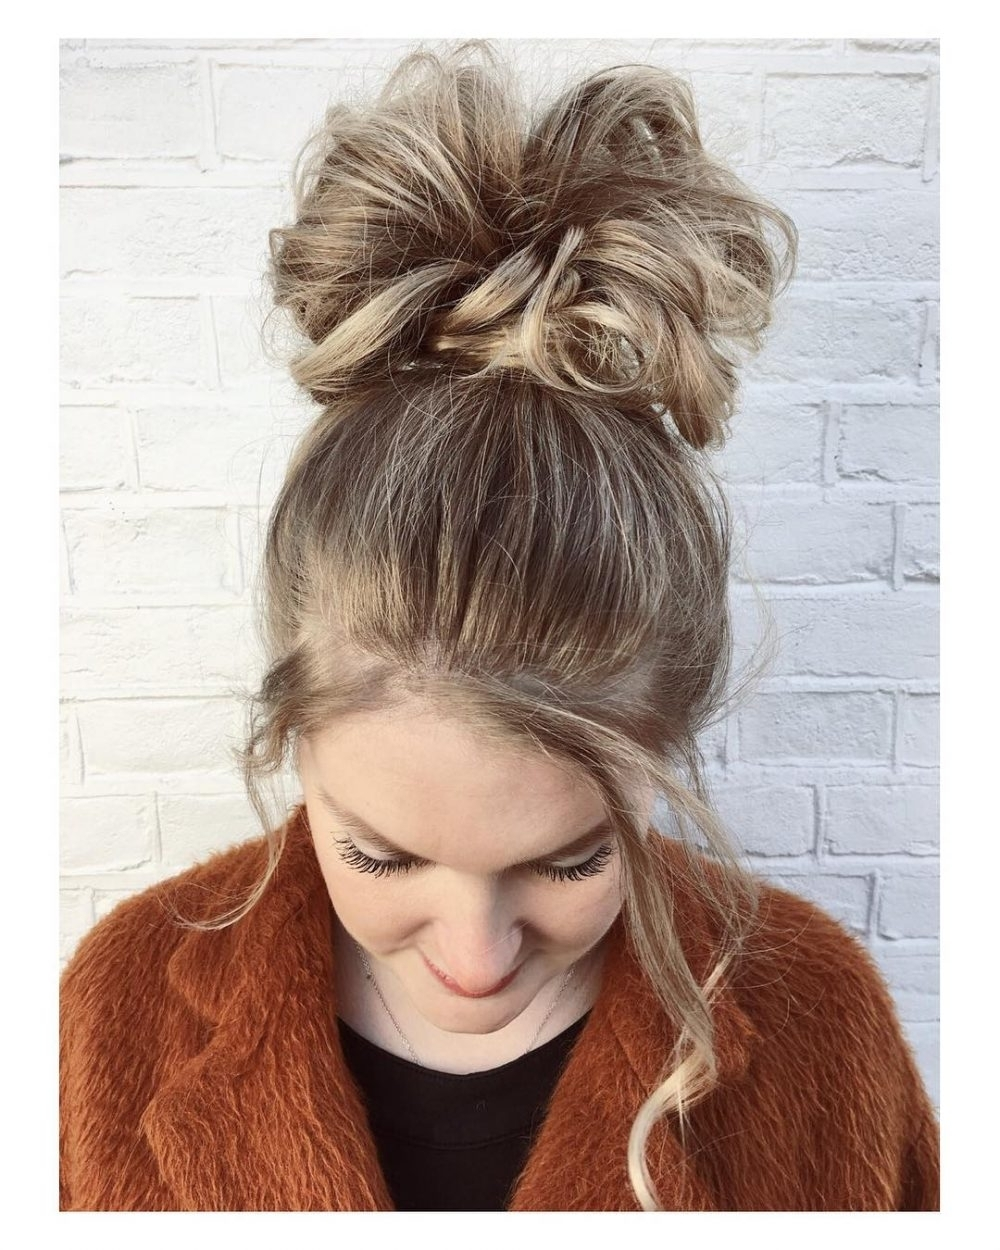 34 Easy Updos For Long Hair Trending For 2018 Regarding Fancy Hairstyles Updo Hairstyles (View 4 of 25)